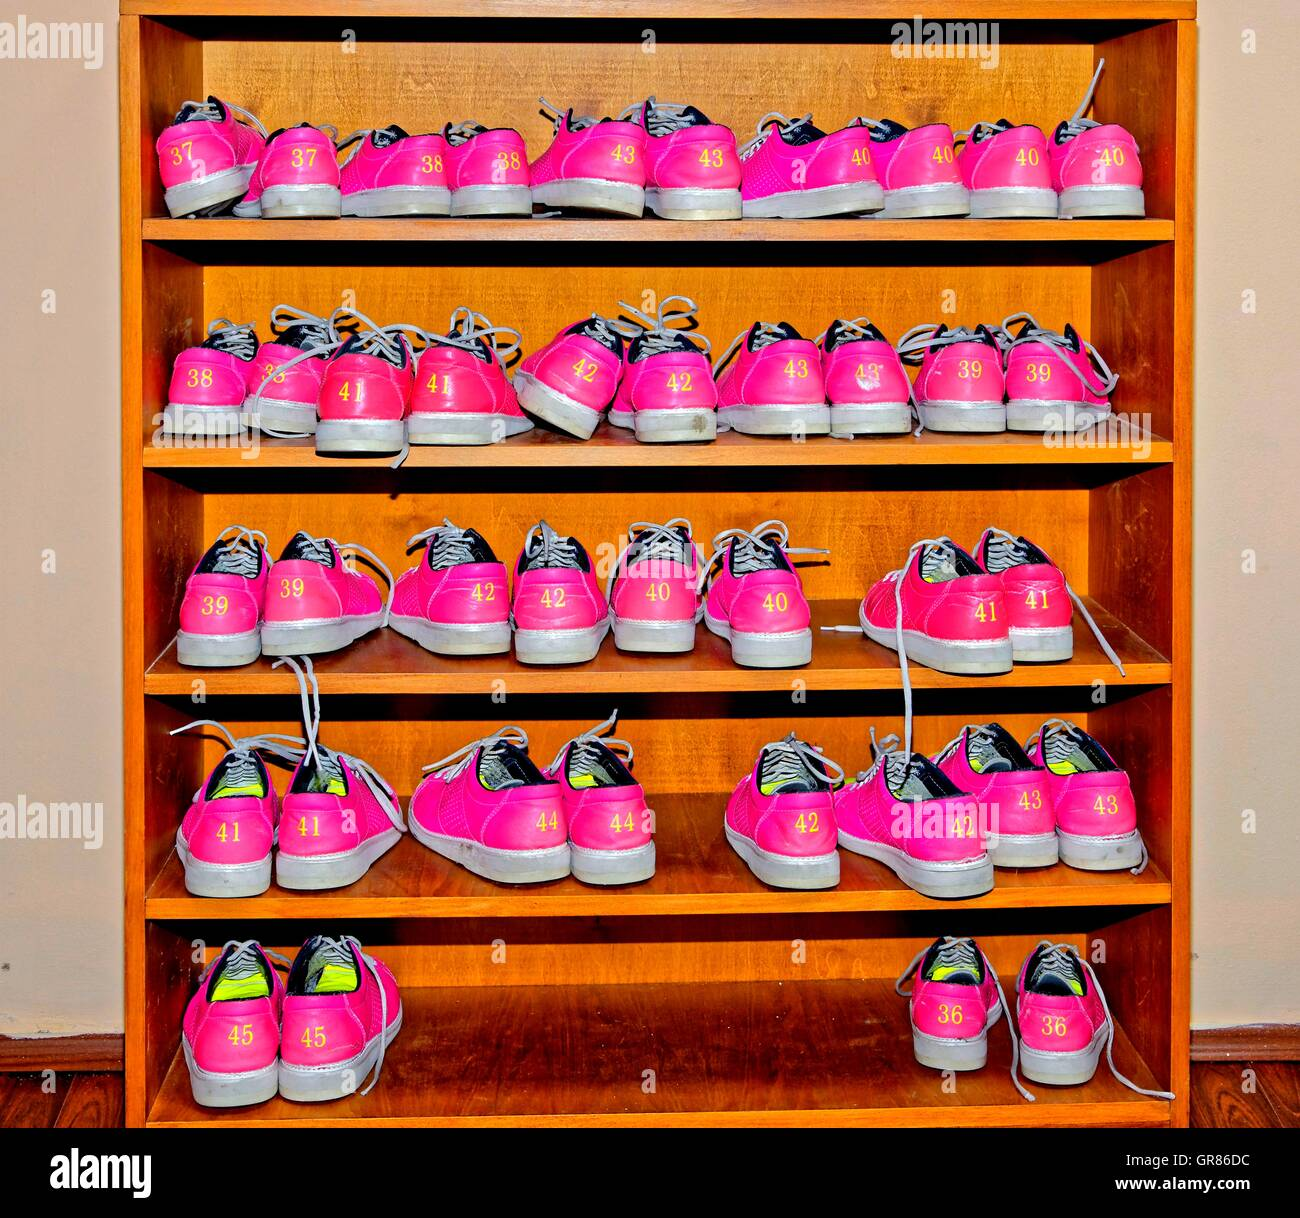 Magenta Bowling Shoes In Wooden Shoe Rack - Stock Image